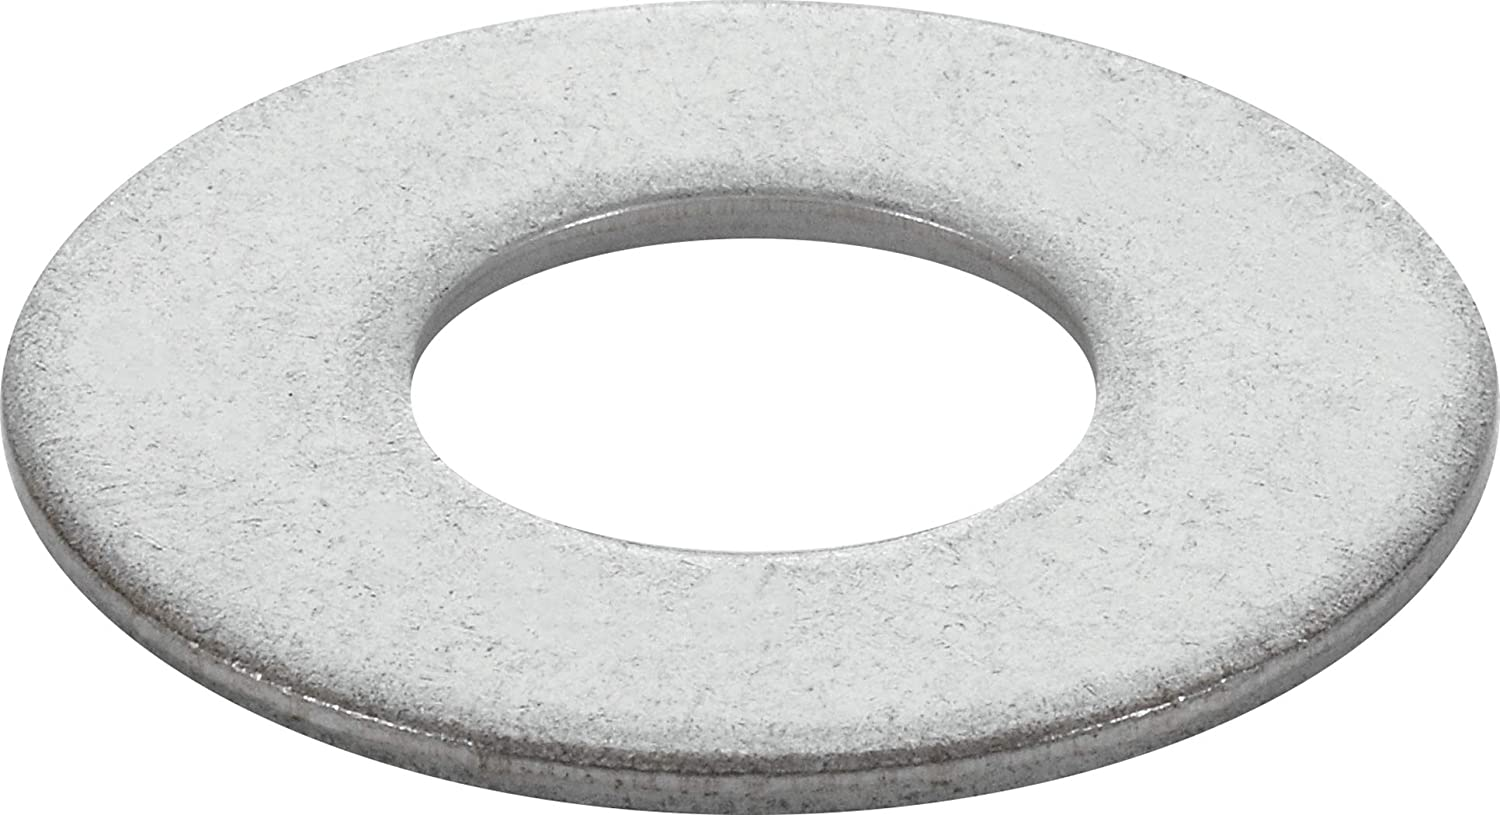 1-5//32 OD Steel Flat Washer Pack of 100 Zinc Plated Finish ASME B18.22.1 19//32 ID 0.095 Thick 9//16 Screw Size